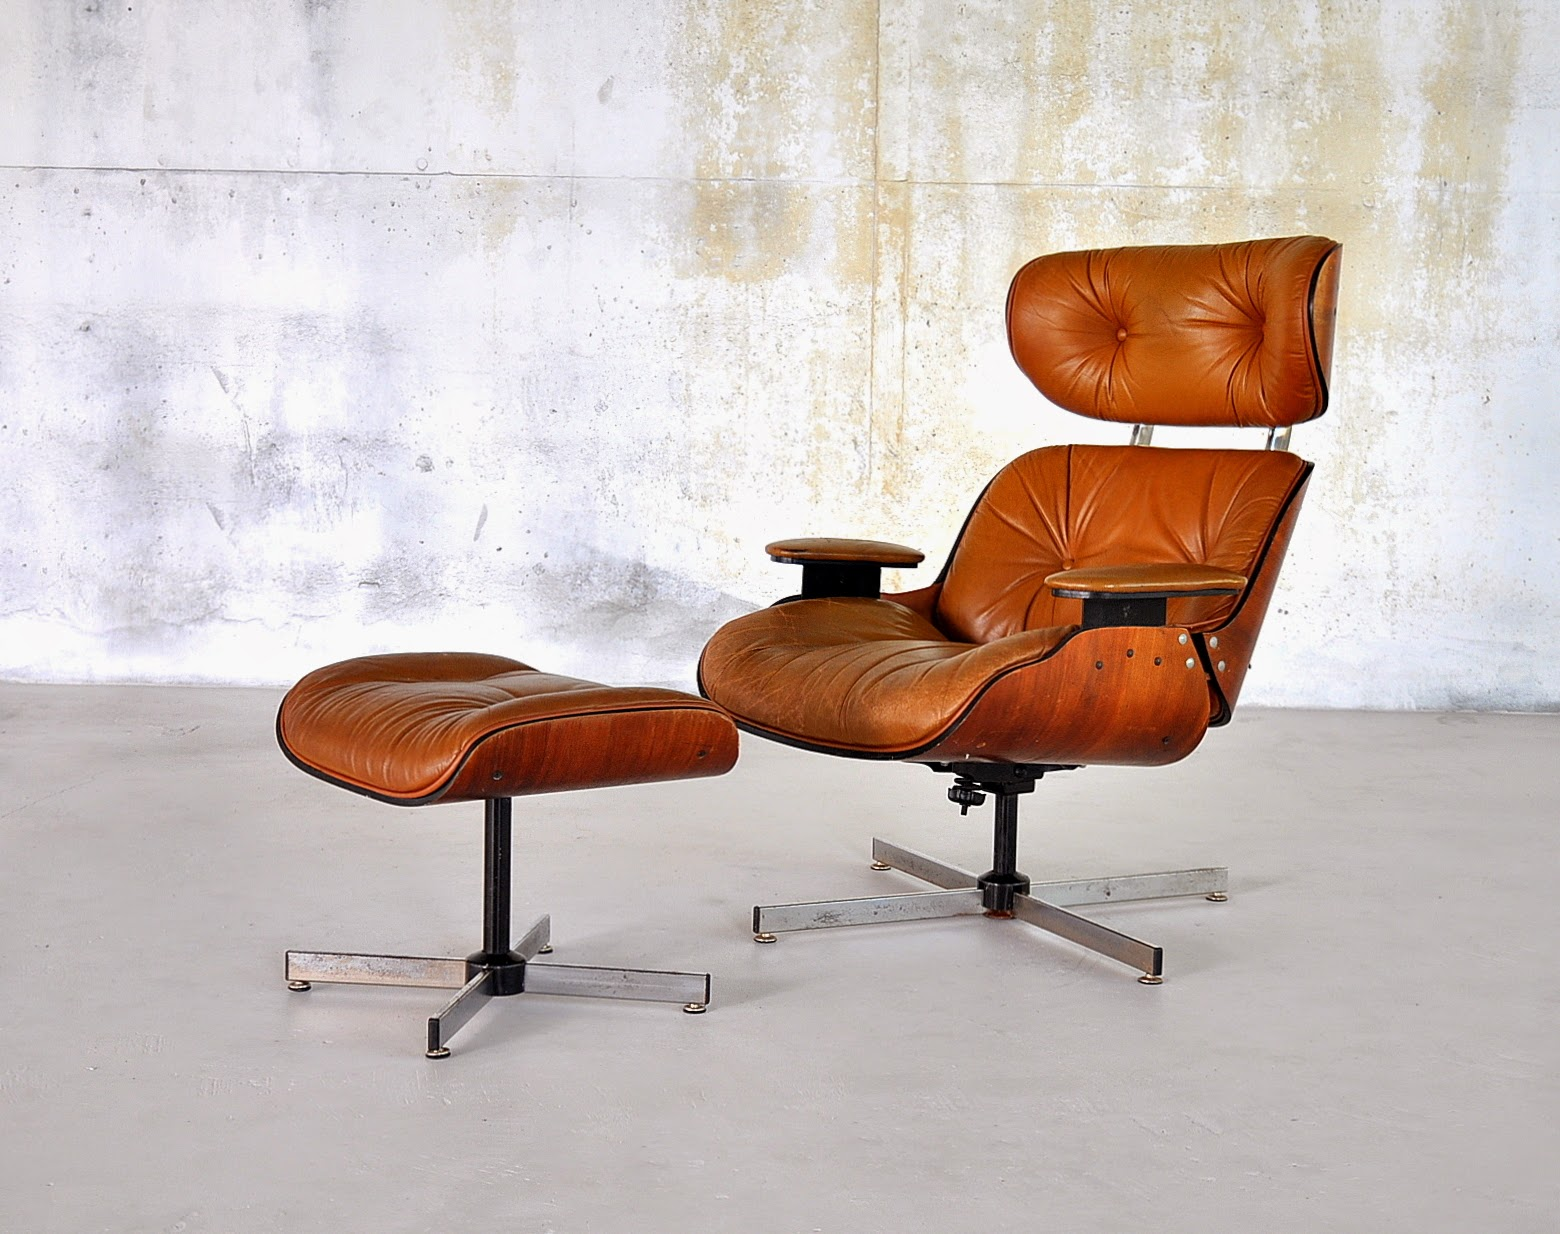 selig eames chair garden wicker covers manufacturing home interior design trends